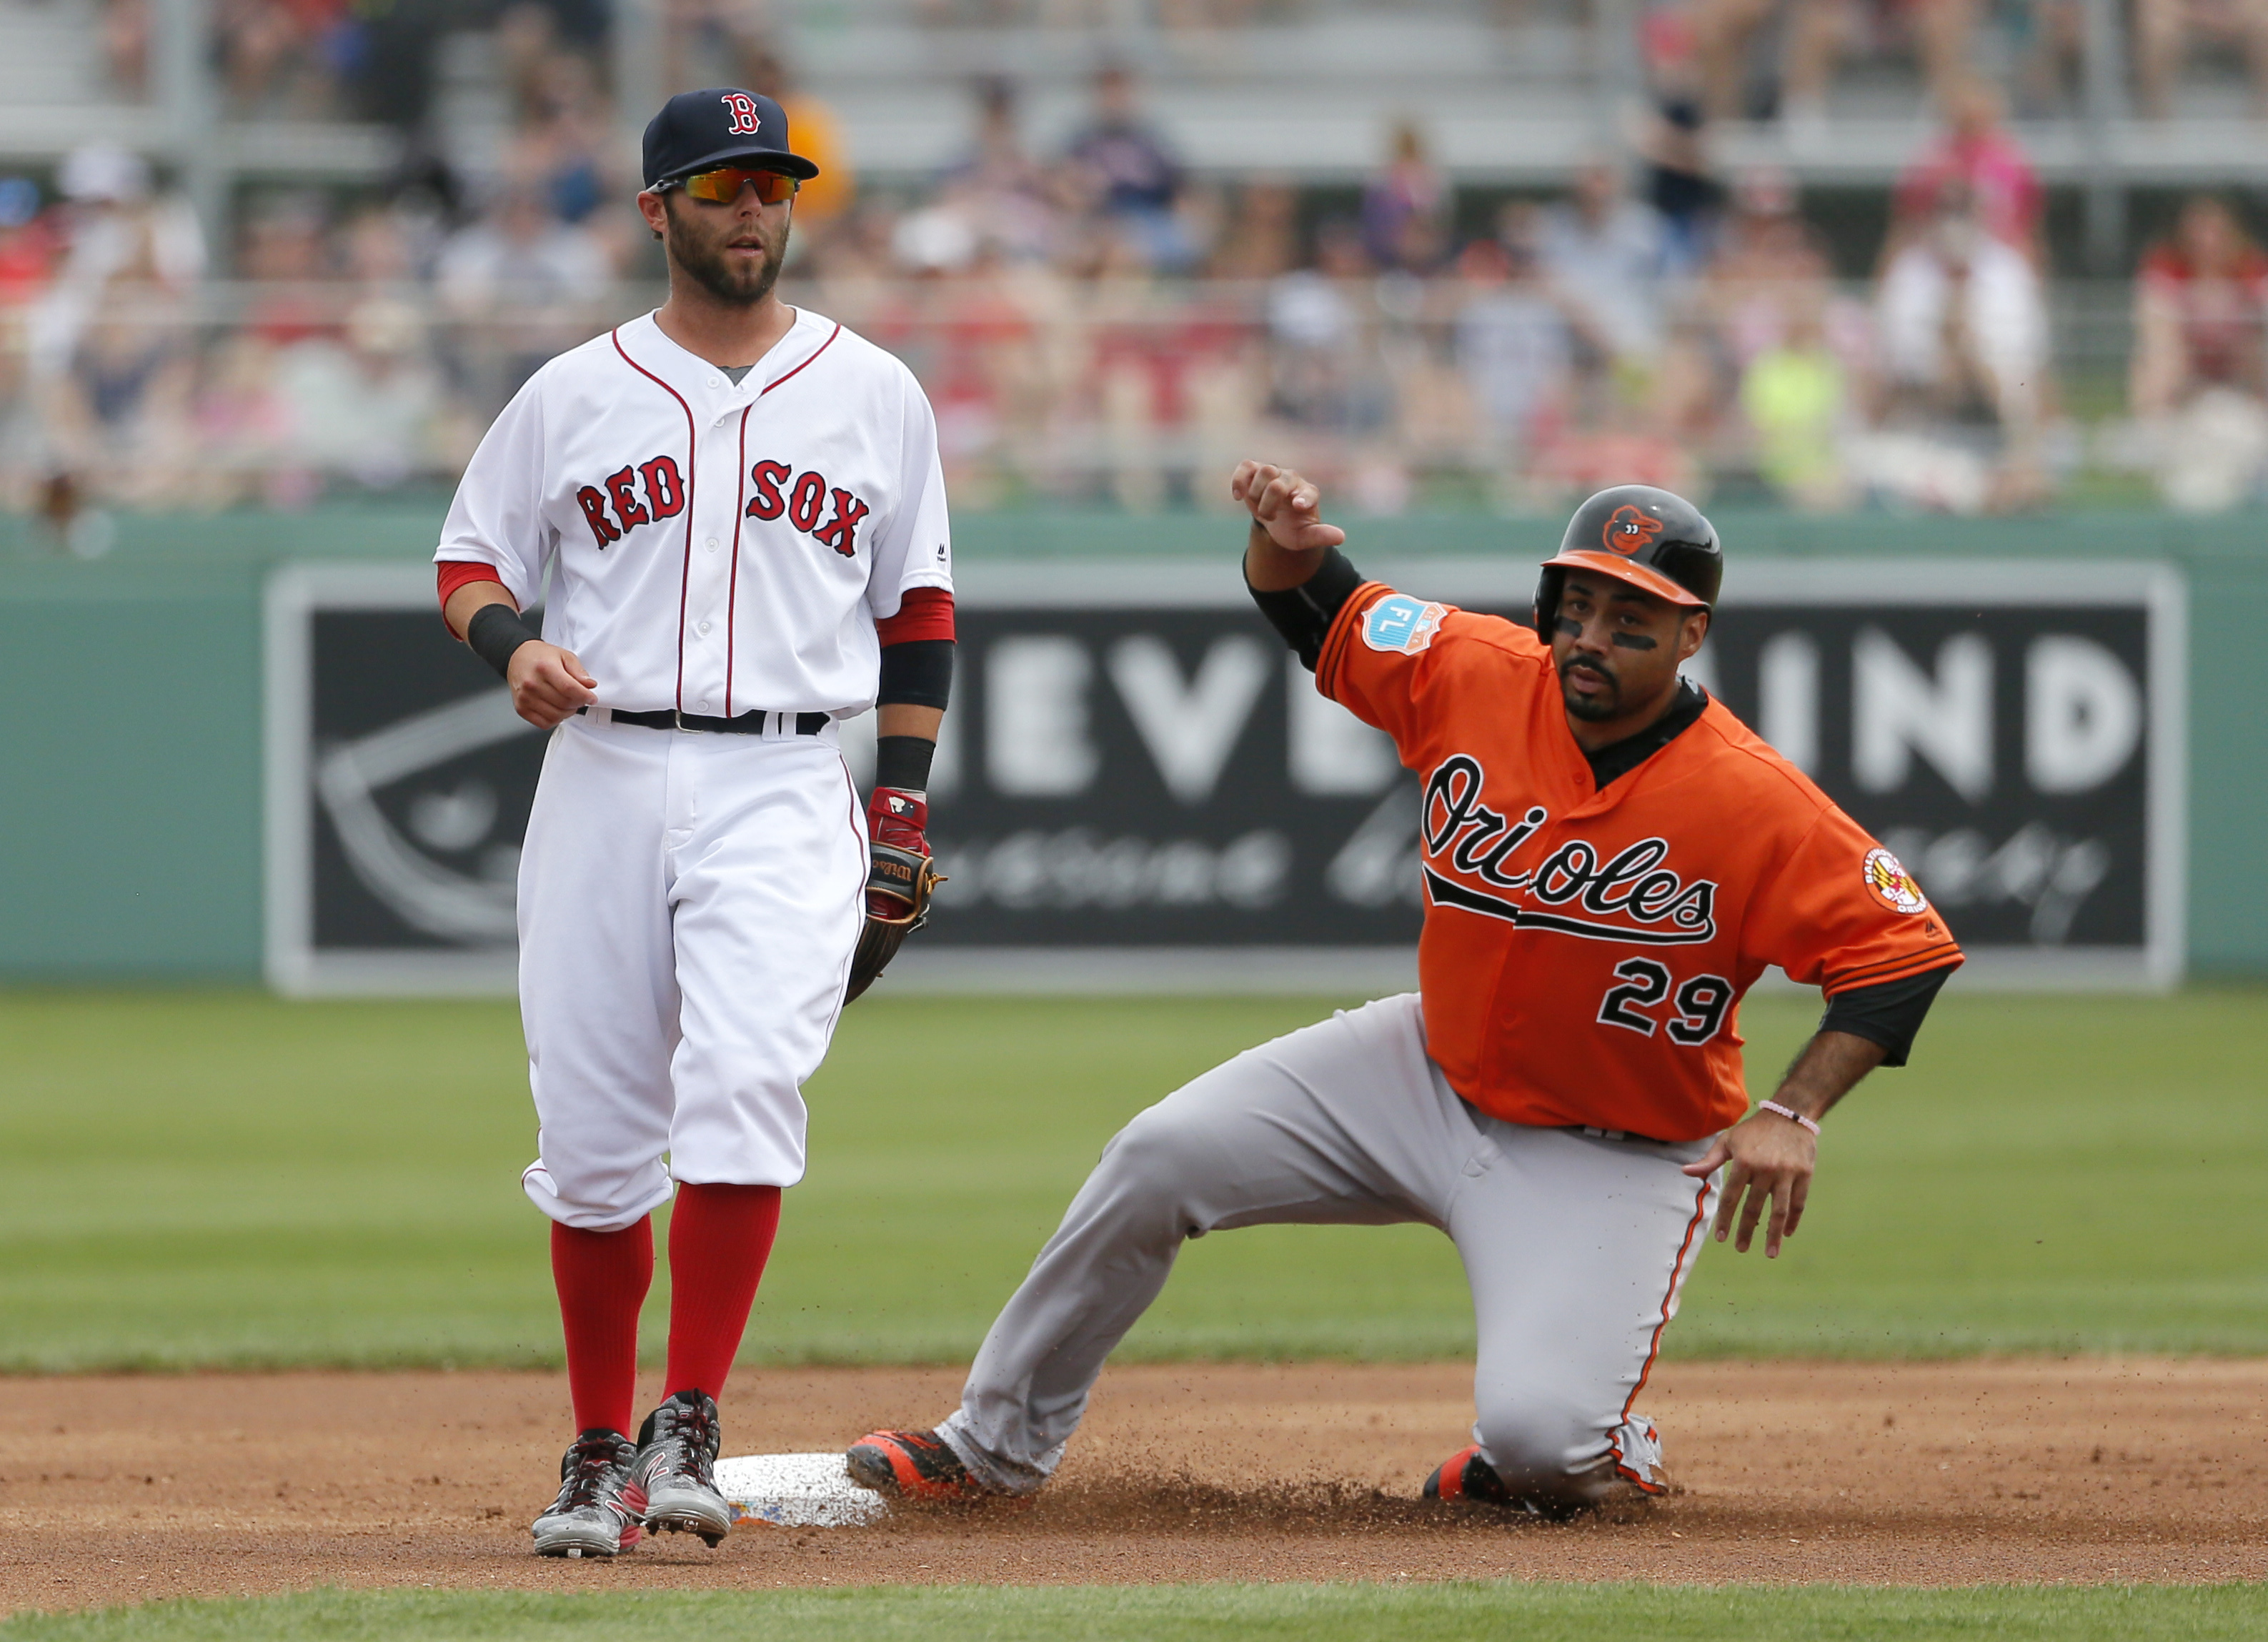 Boston Red Sox's Dustin Pedroia, left, stands by as Baltimore Orioles' Pedro Alvarez steals second while Nolan Reimold was at-bat in the first inning of a spring training baseball game, Monday, March 28, 2016, in Fort Myers, Fla. (AP Photo/Tony Gutierrez)